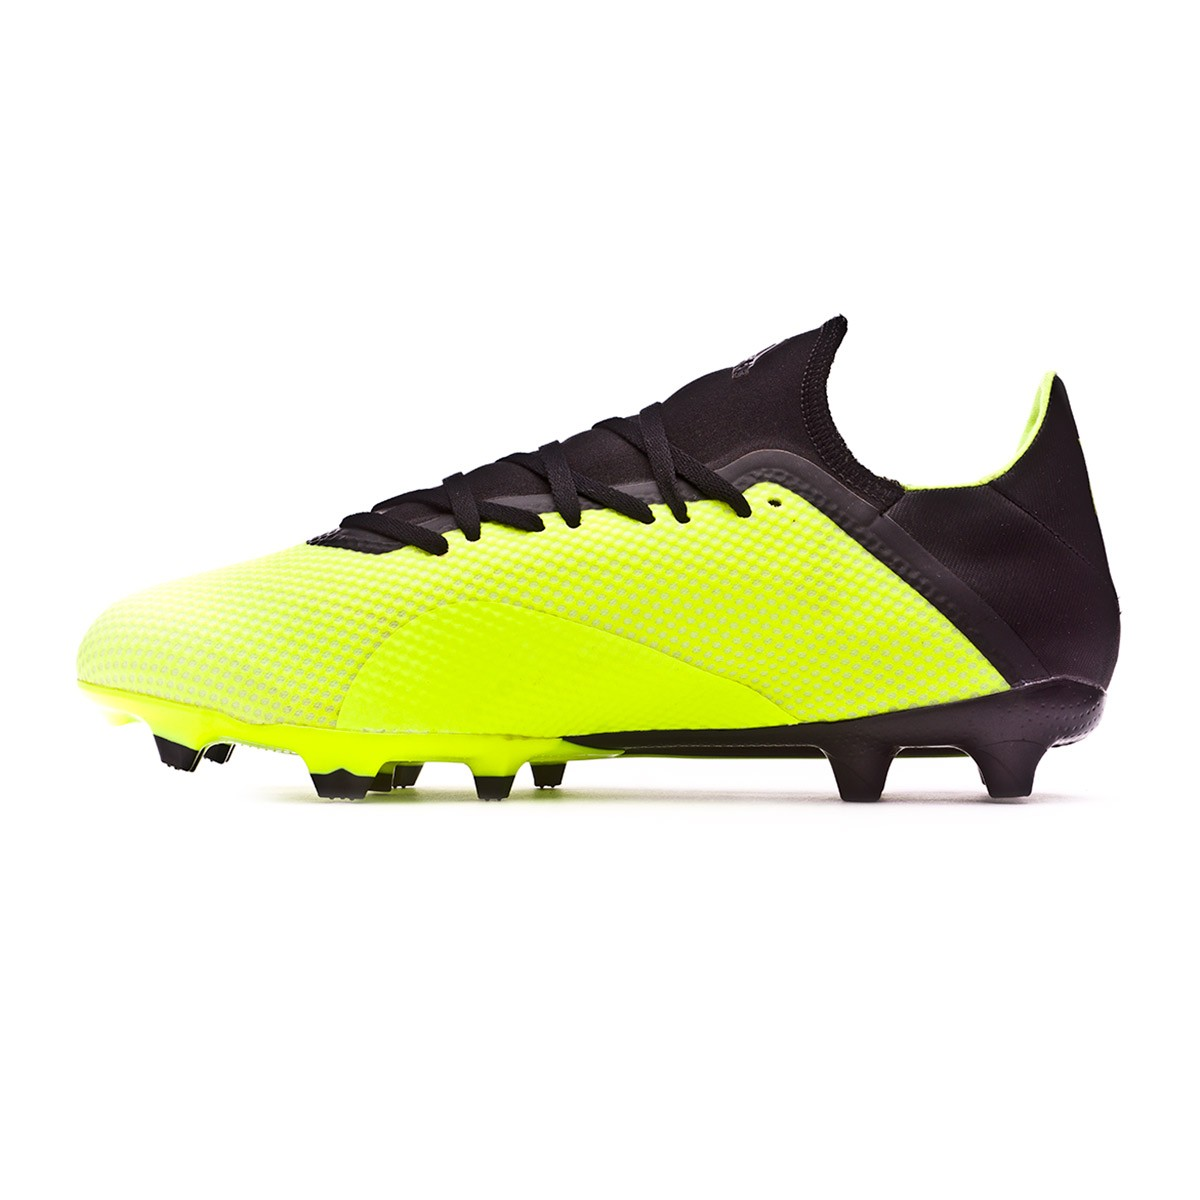 958d5af5d Football Boots adidas X 18.3 FG Solar yellow-Core black-White - Tienda de  fútbol Fútbol Emotion